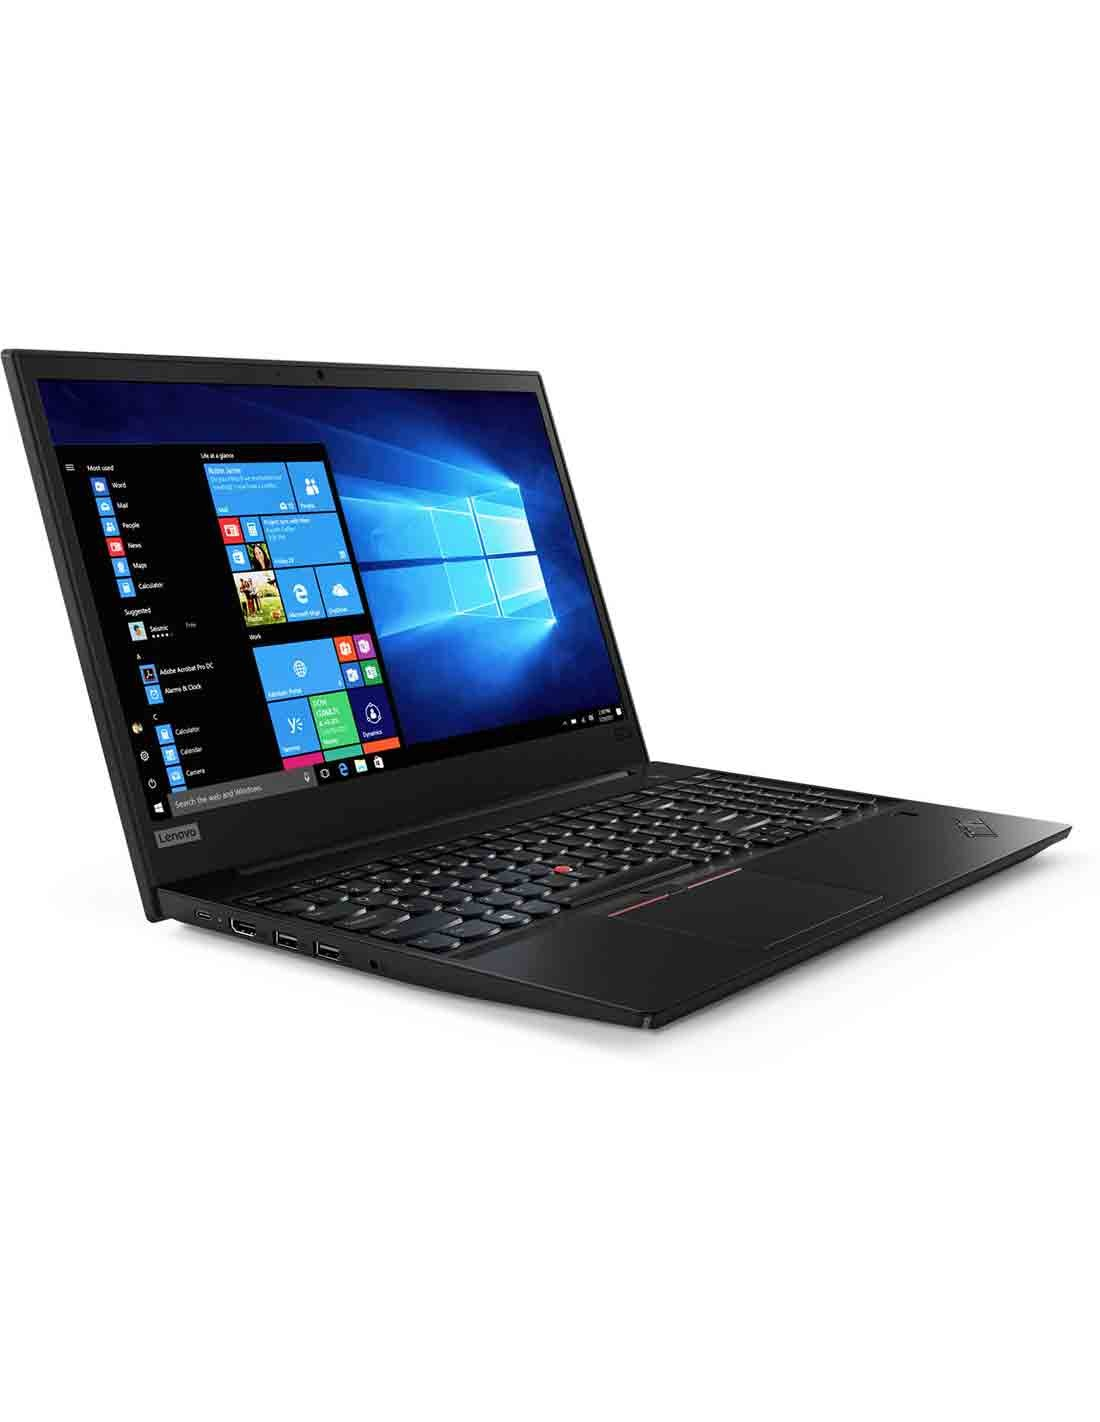 Lenovo ThinkPad E580 Intel Core i5-8250U at a cheap price and free delivery in Dubai